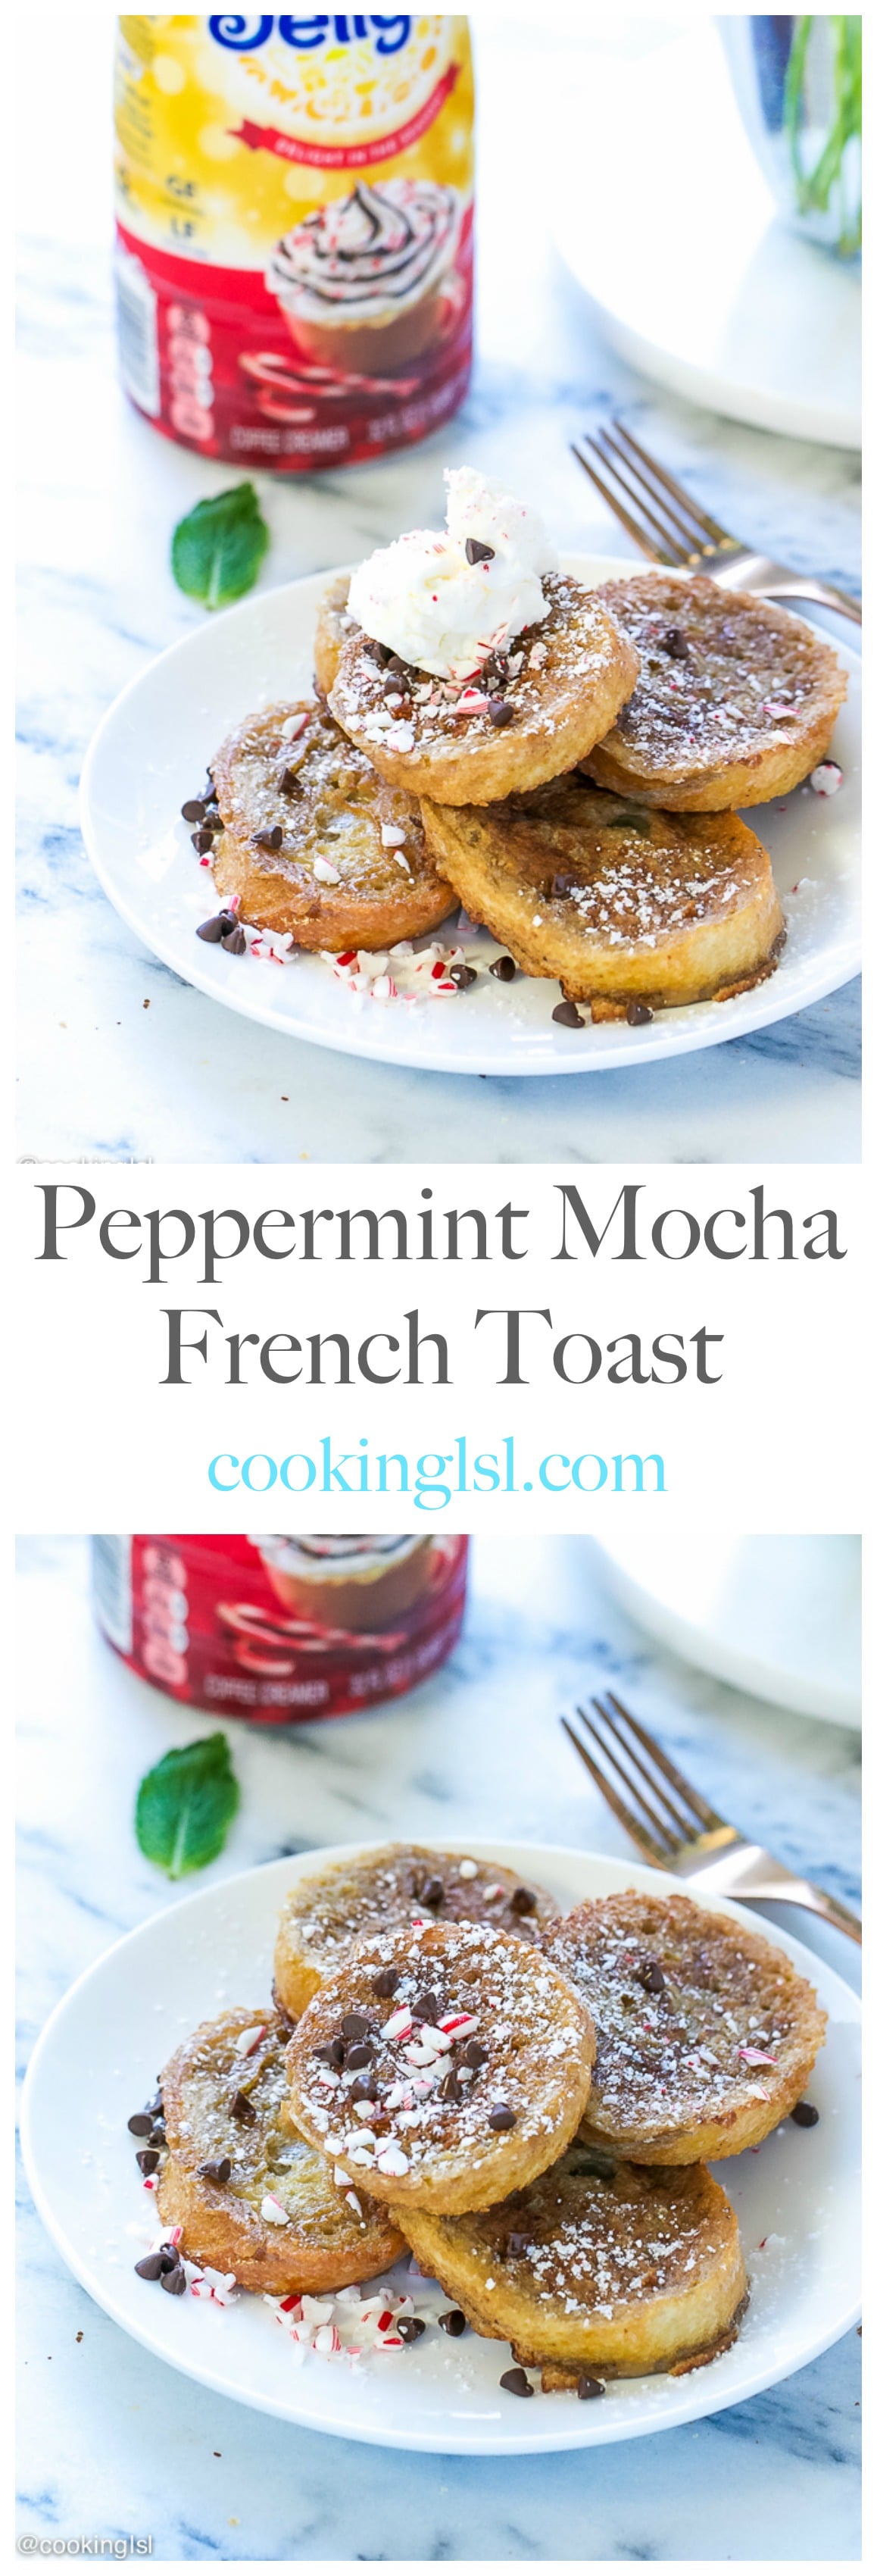 Peppermint-Mocha-French-Toast